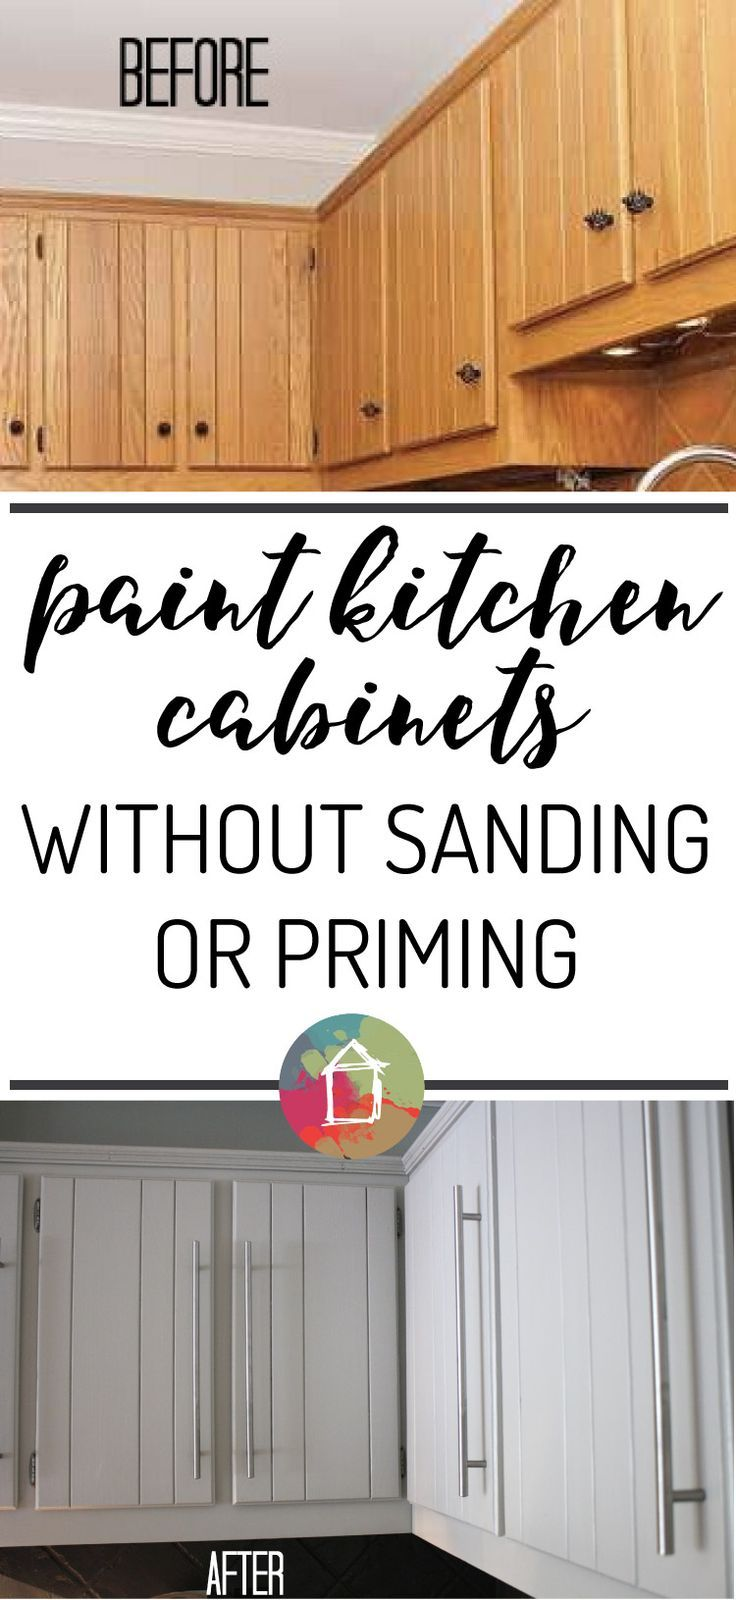 Best 10 How to paint kitchens ideas on Pinterest Painting